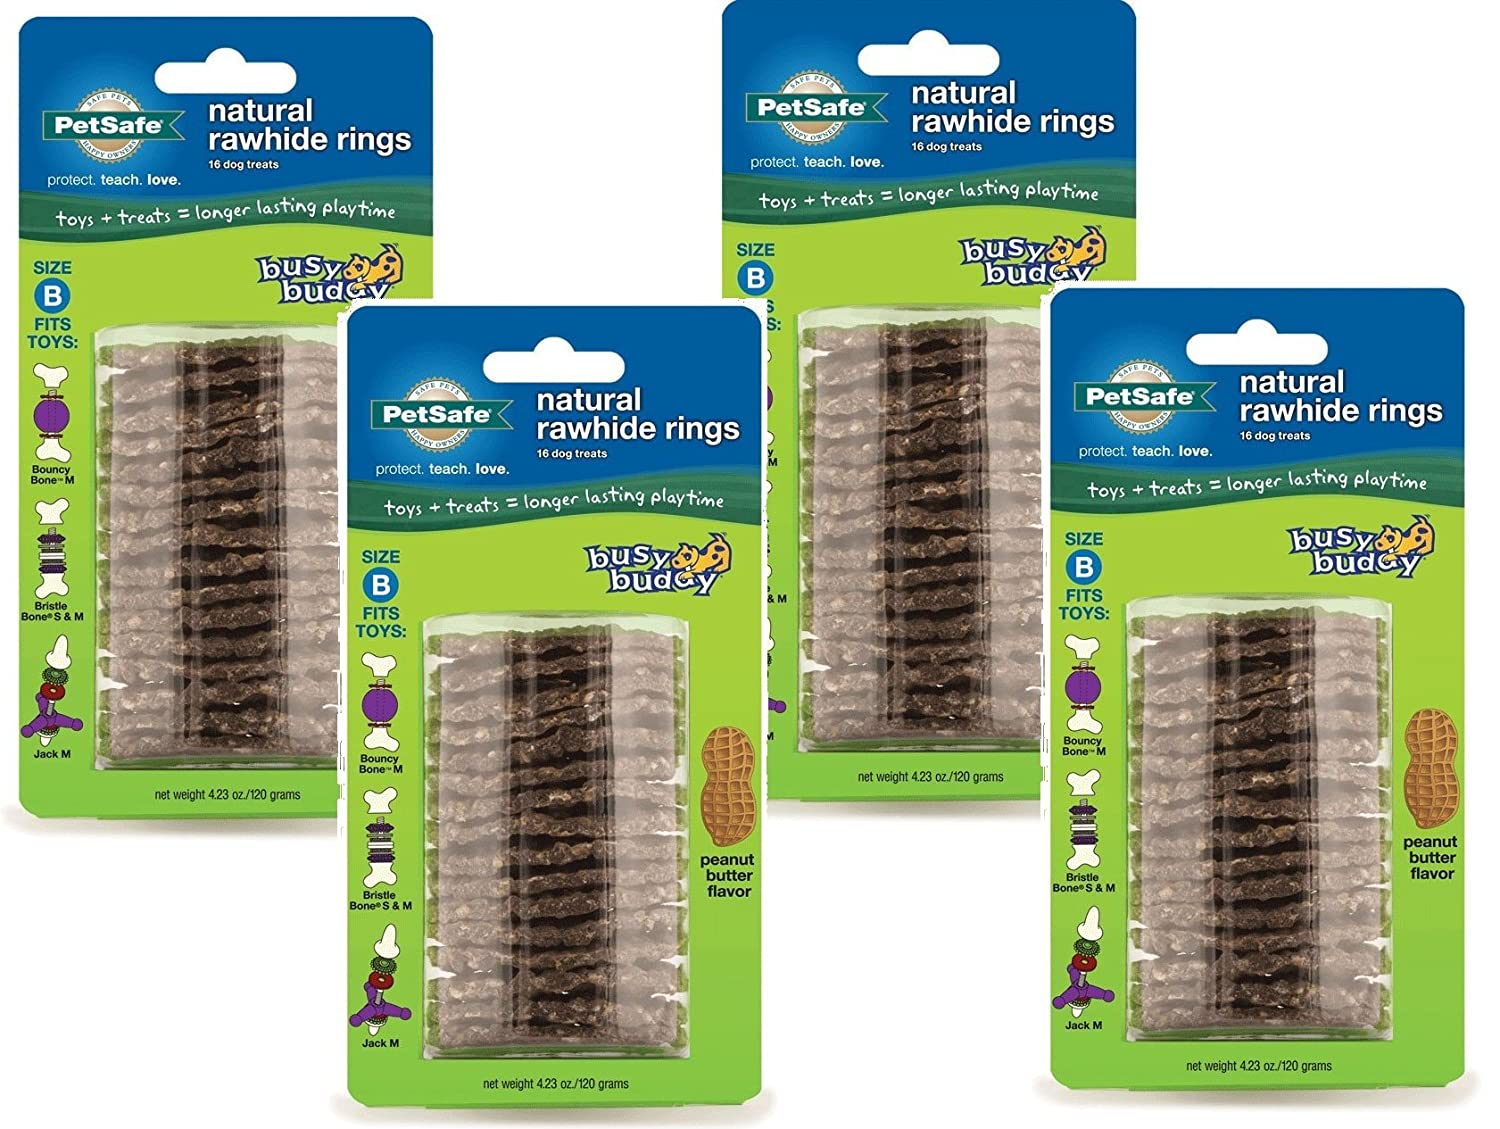 4 Pack PetSafe Busy Buddy Refill Ring Dog Treats for select Busy Buddy Dog Toys, Peanut Butter Flavored Natural Rawhide, Size B